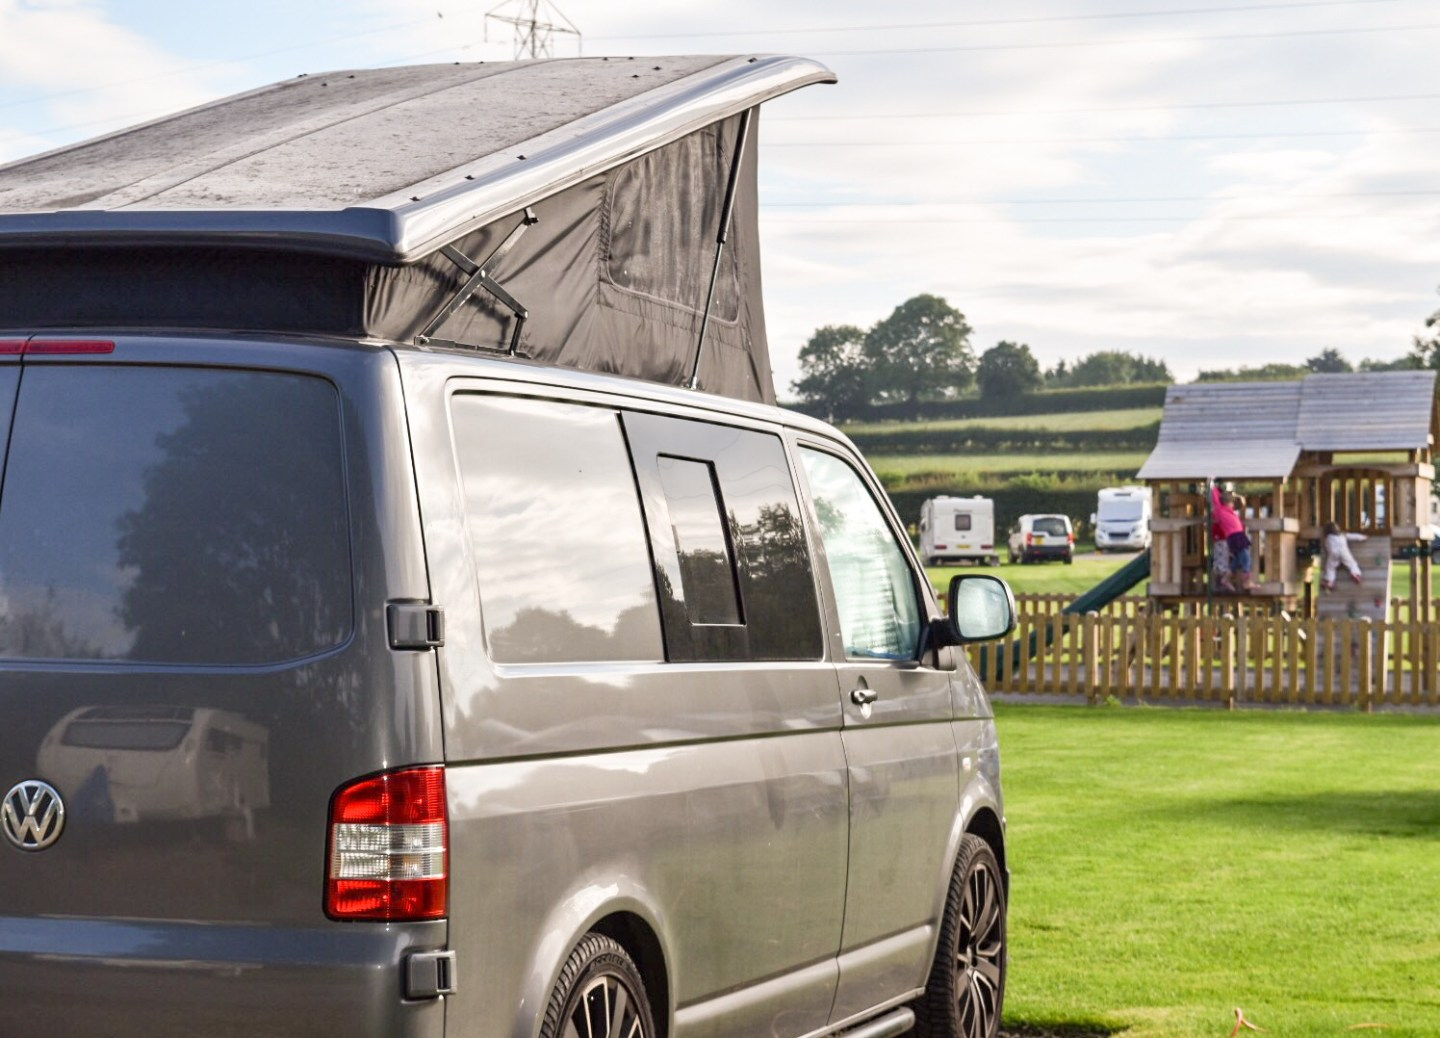 Talking about camper van insurance: Scenic insurance